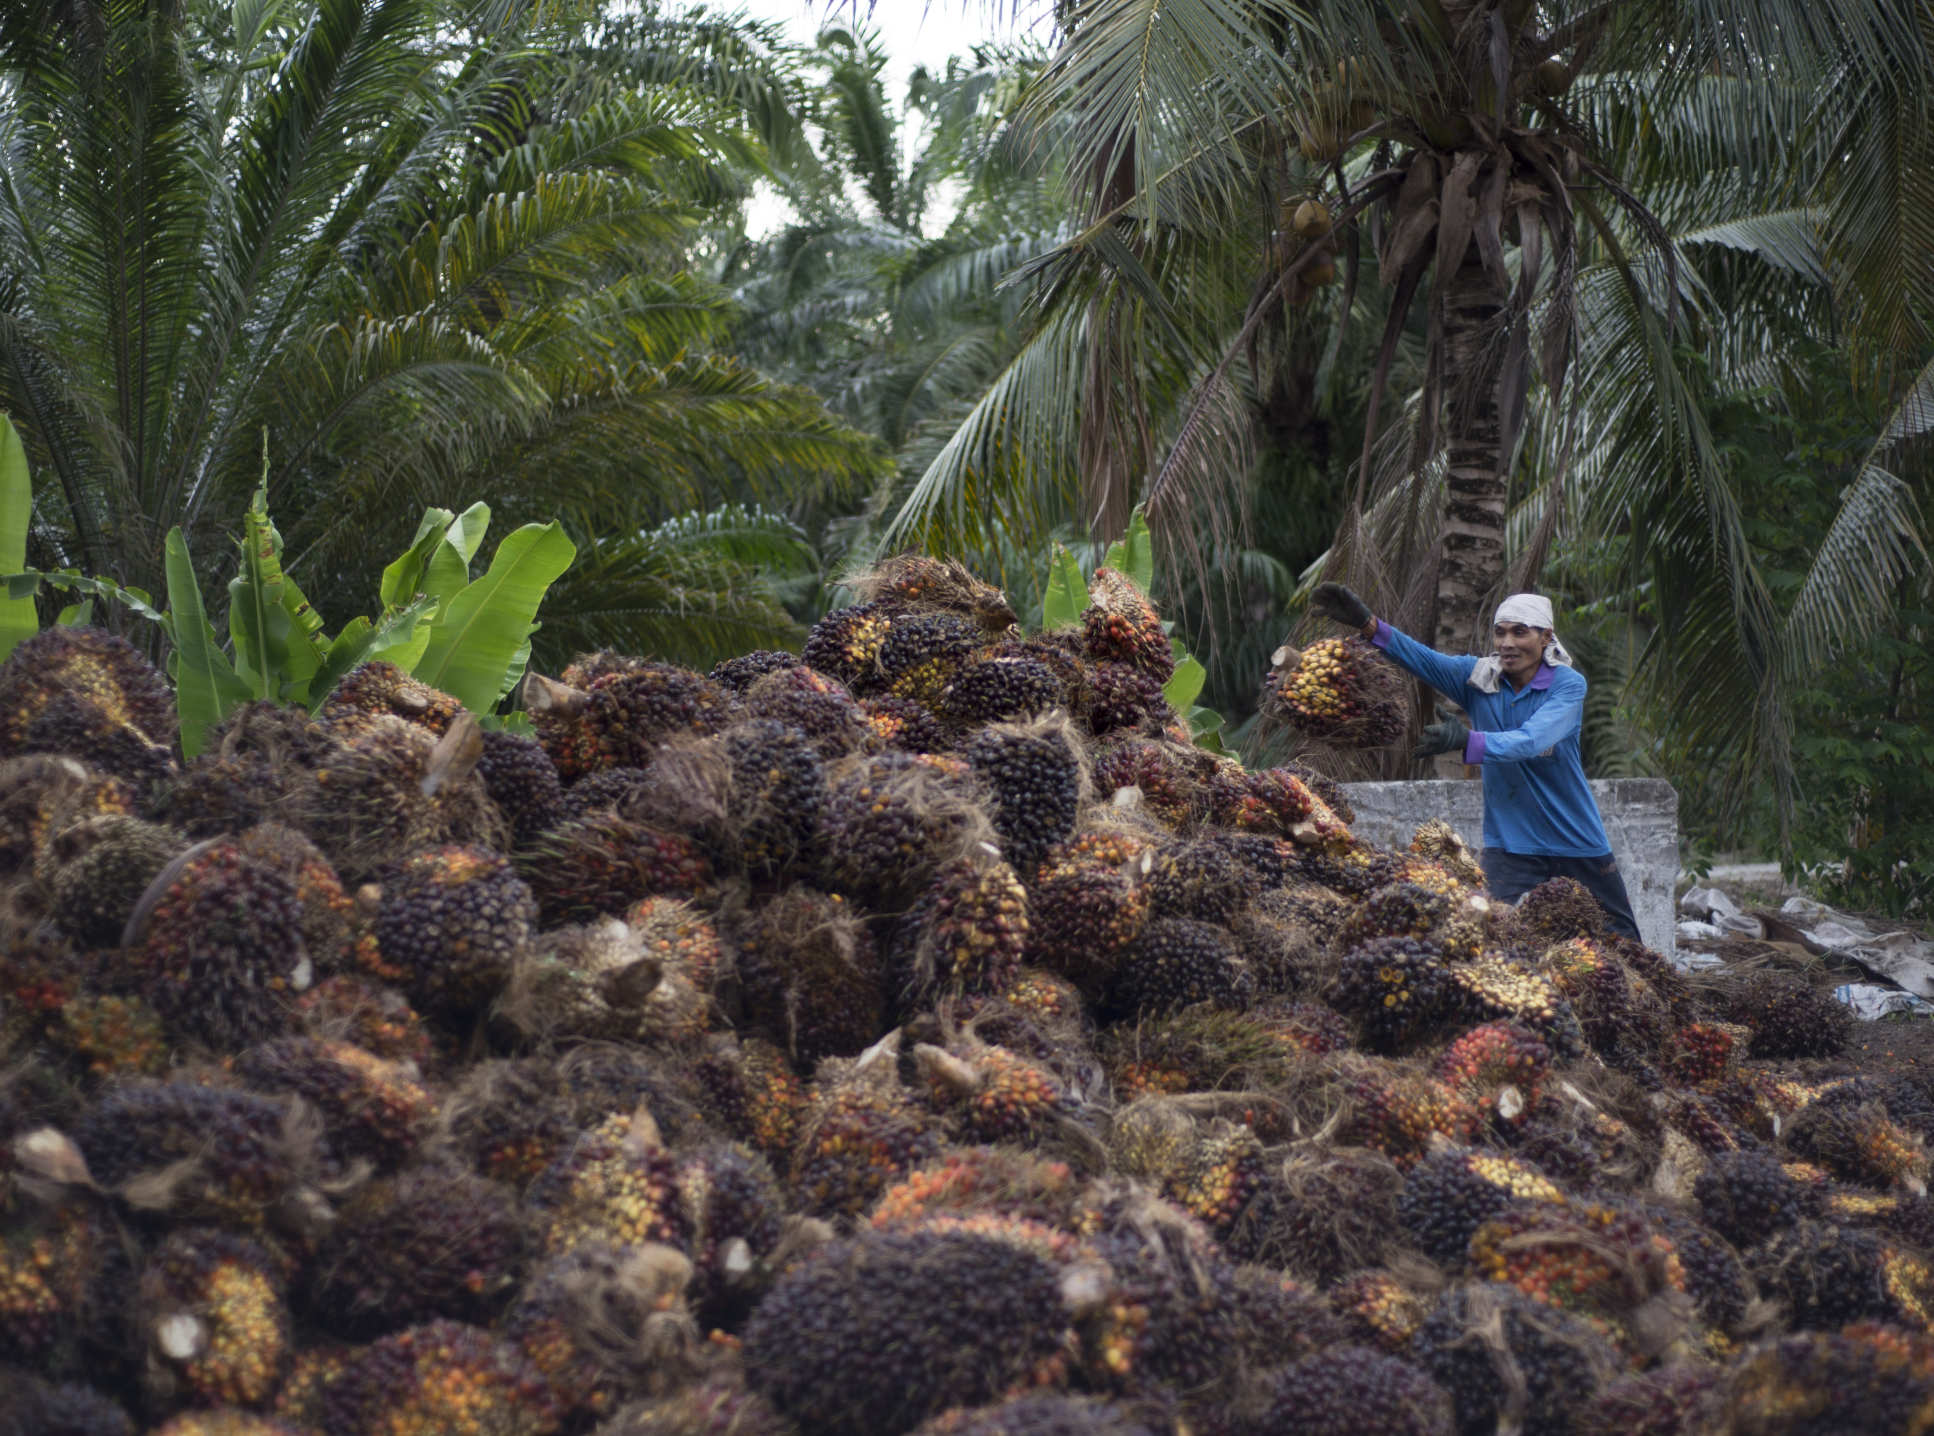 Woman harvesting palm oil